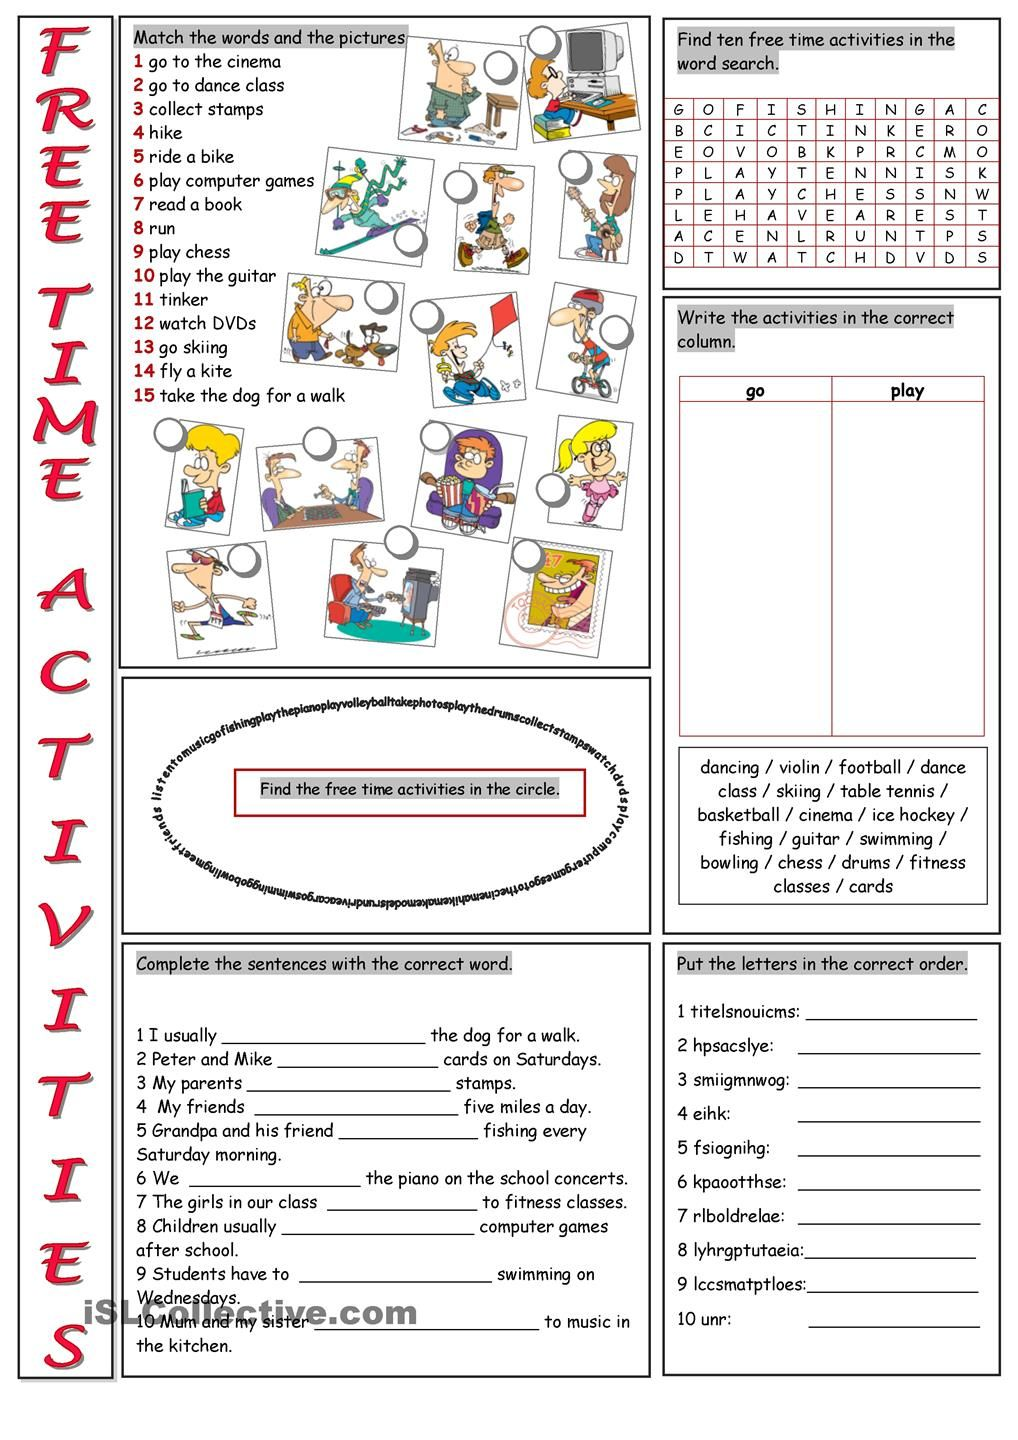 Free Time Activities Vocabulary Exercises